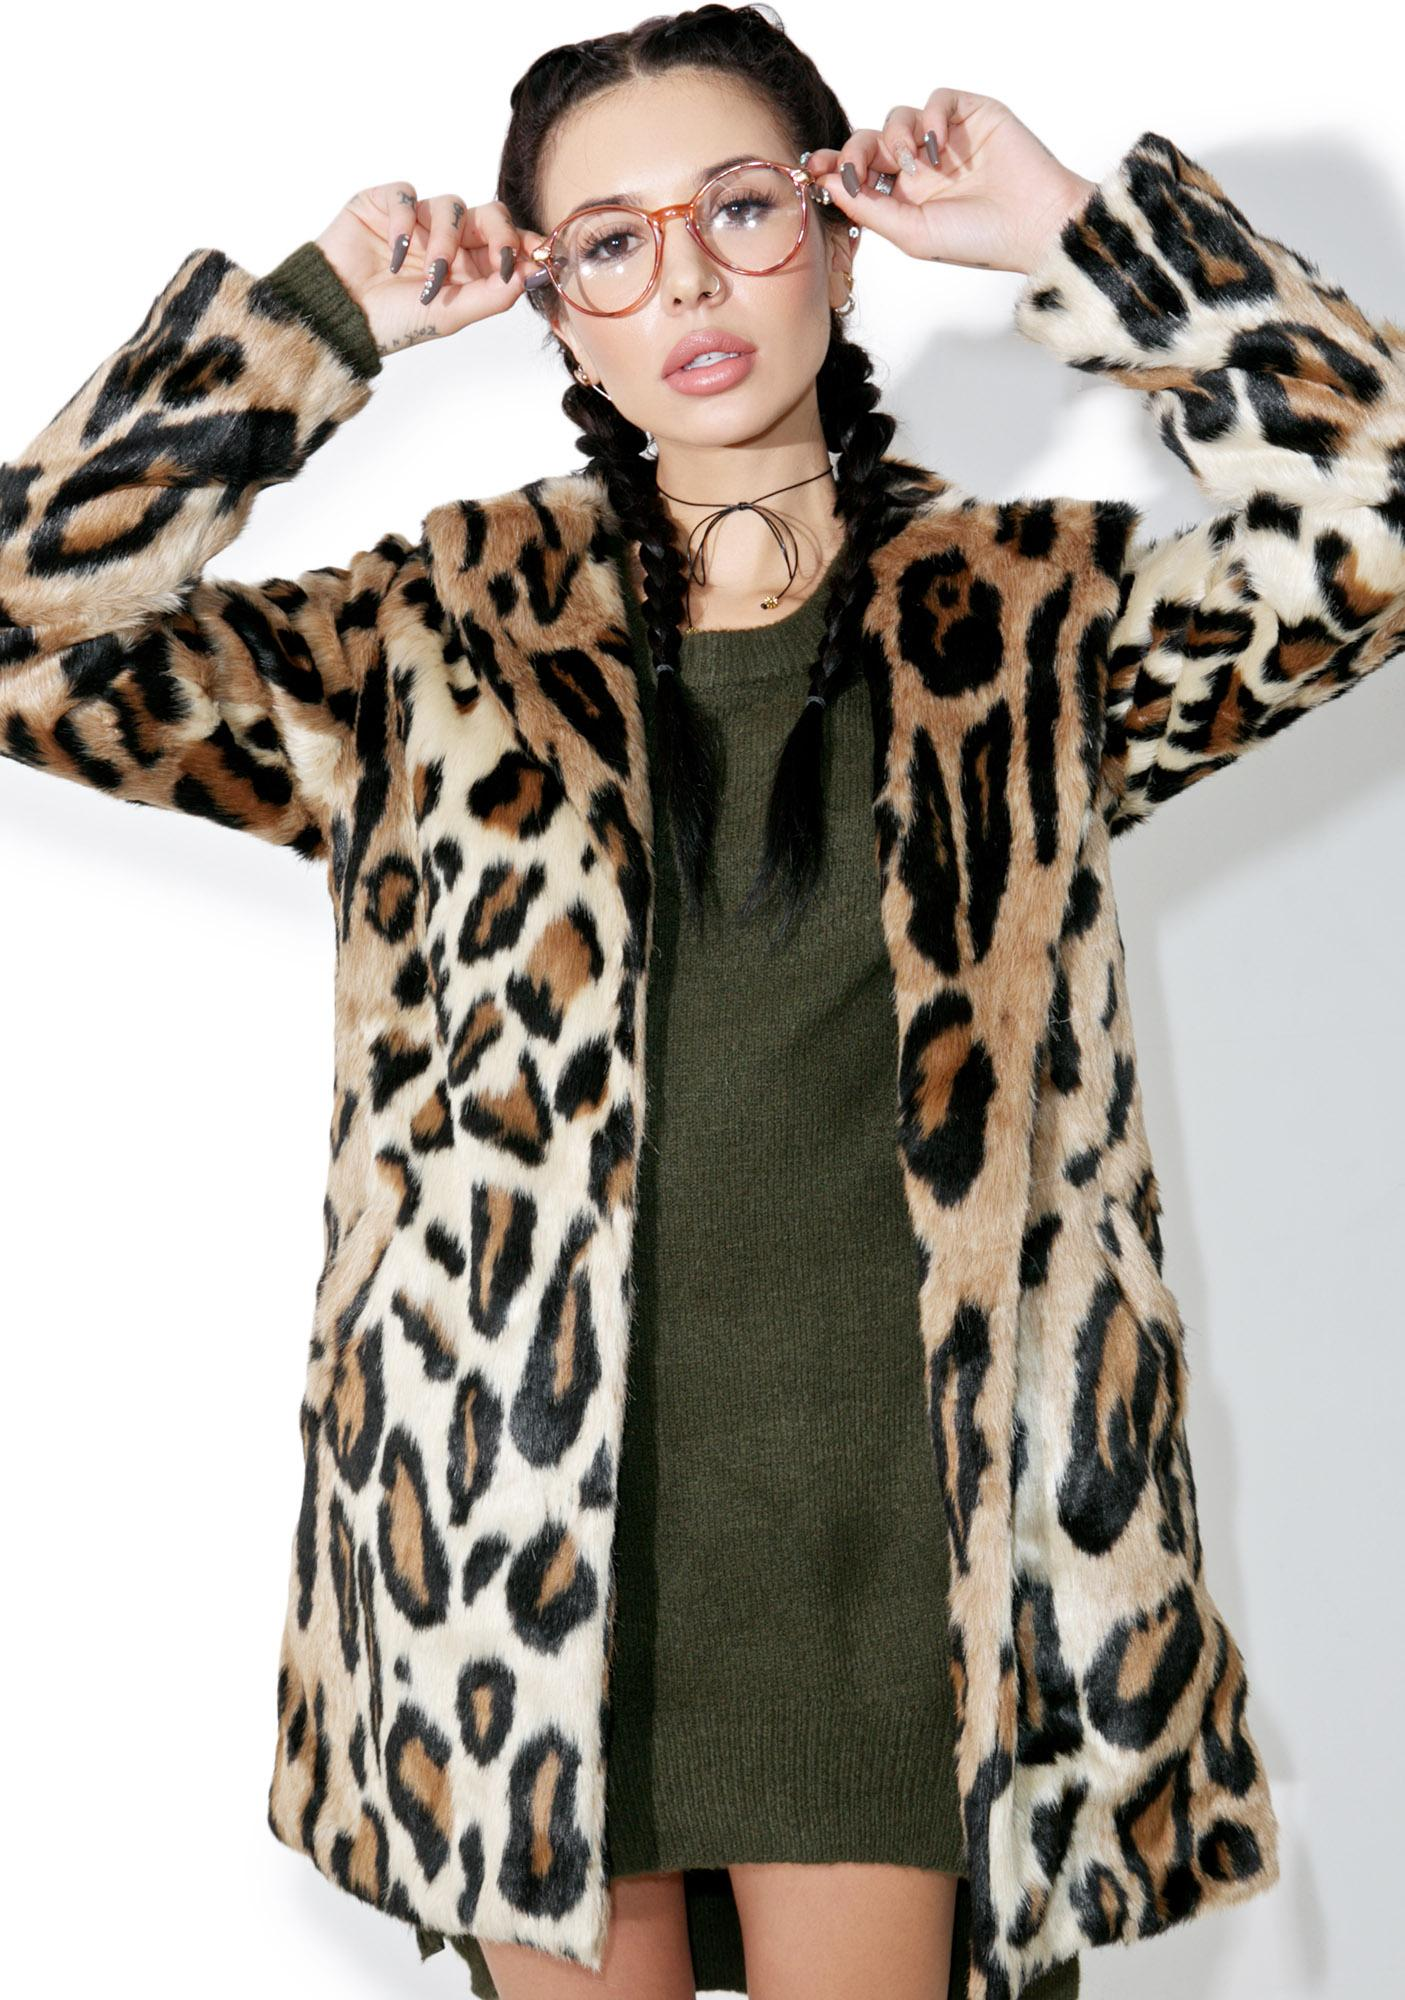 20 Leopard Printed Fur Coat Outfits 20 Leopard Printed Fur Coat Outfits new pics